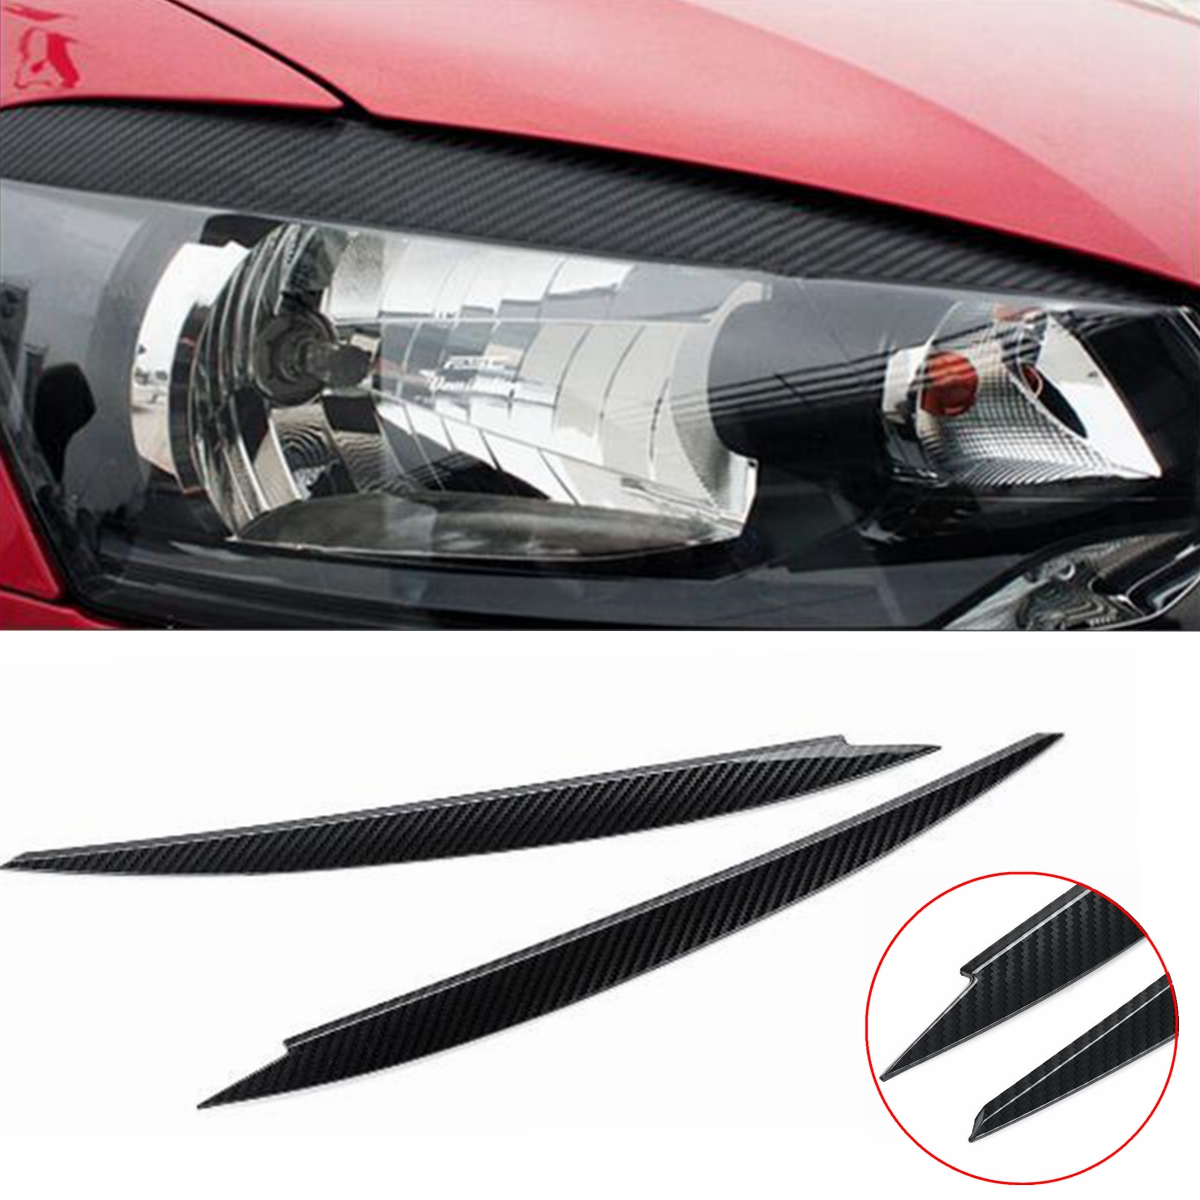 2 x Headlight Eyebrow Eyelid Cover Trim for VW Golf 7 VII GTI GTD R MK7 2013-2017 Carbon Fiber Eye-catching Show Easy Install